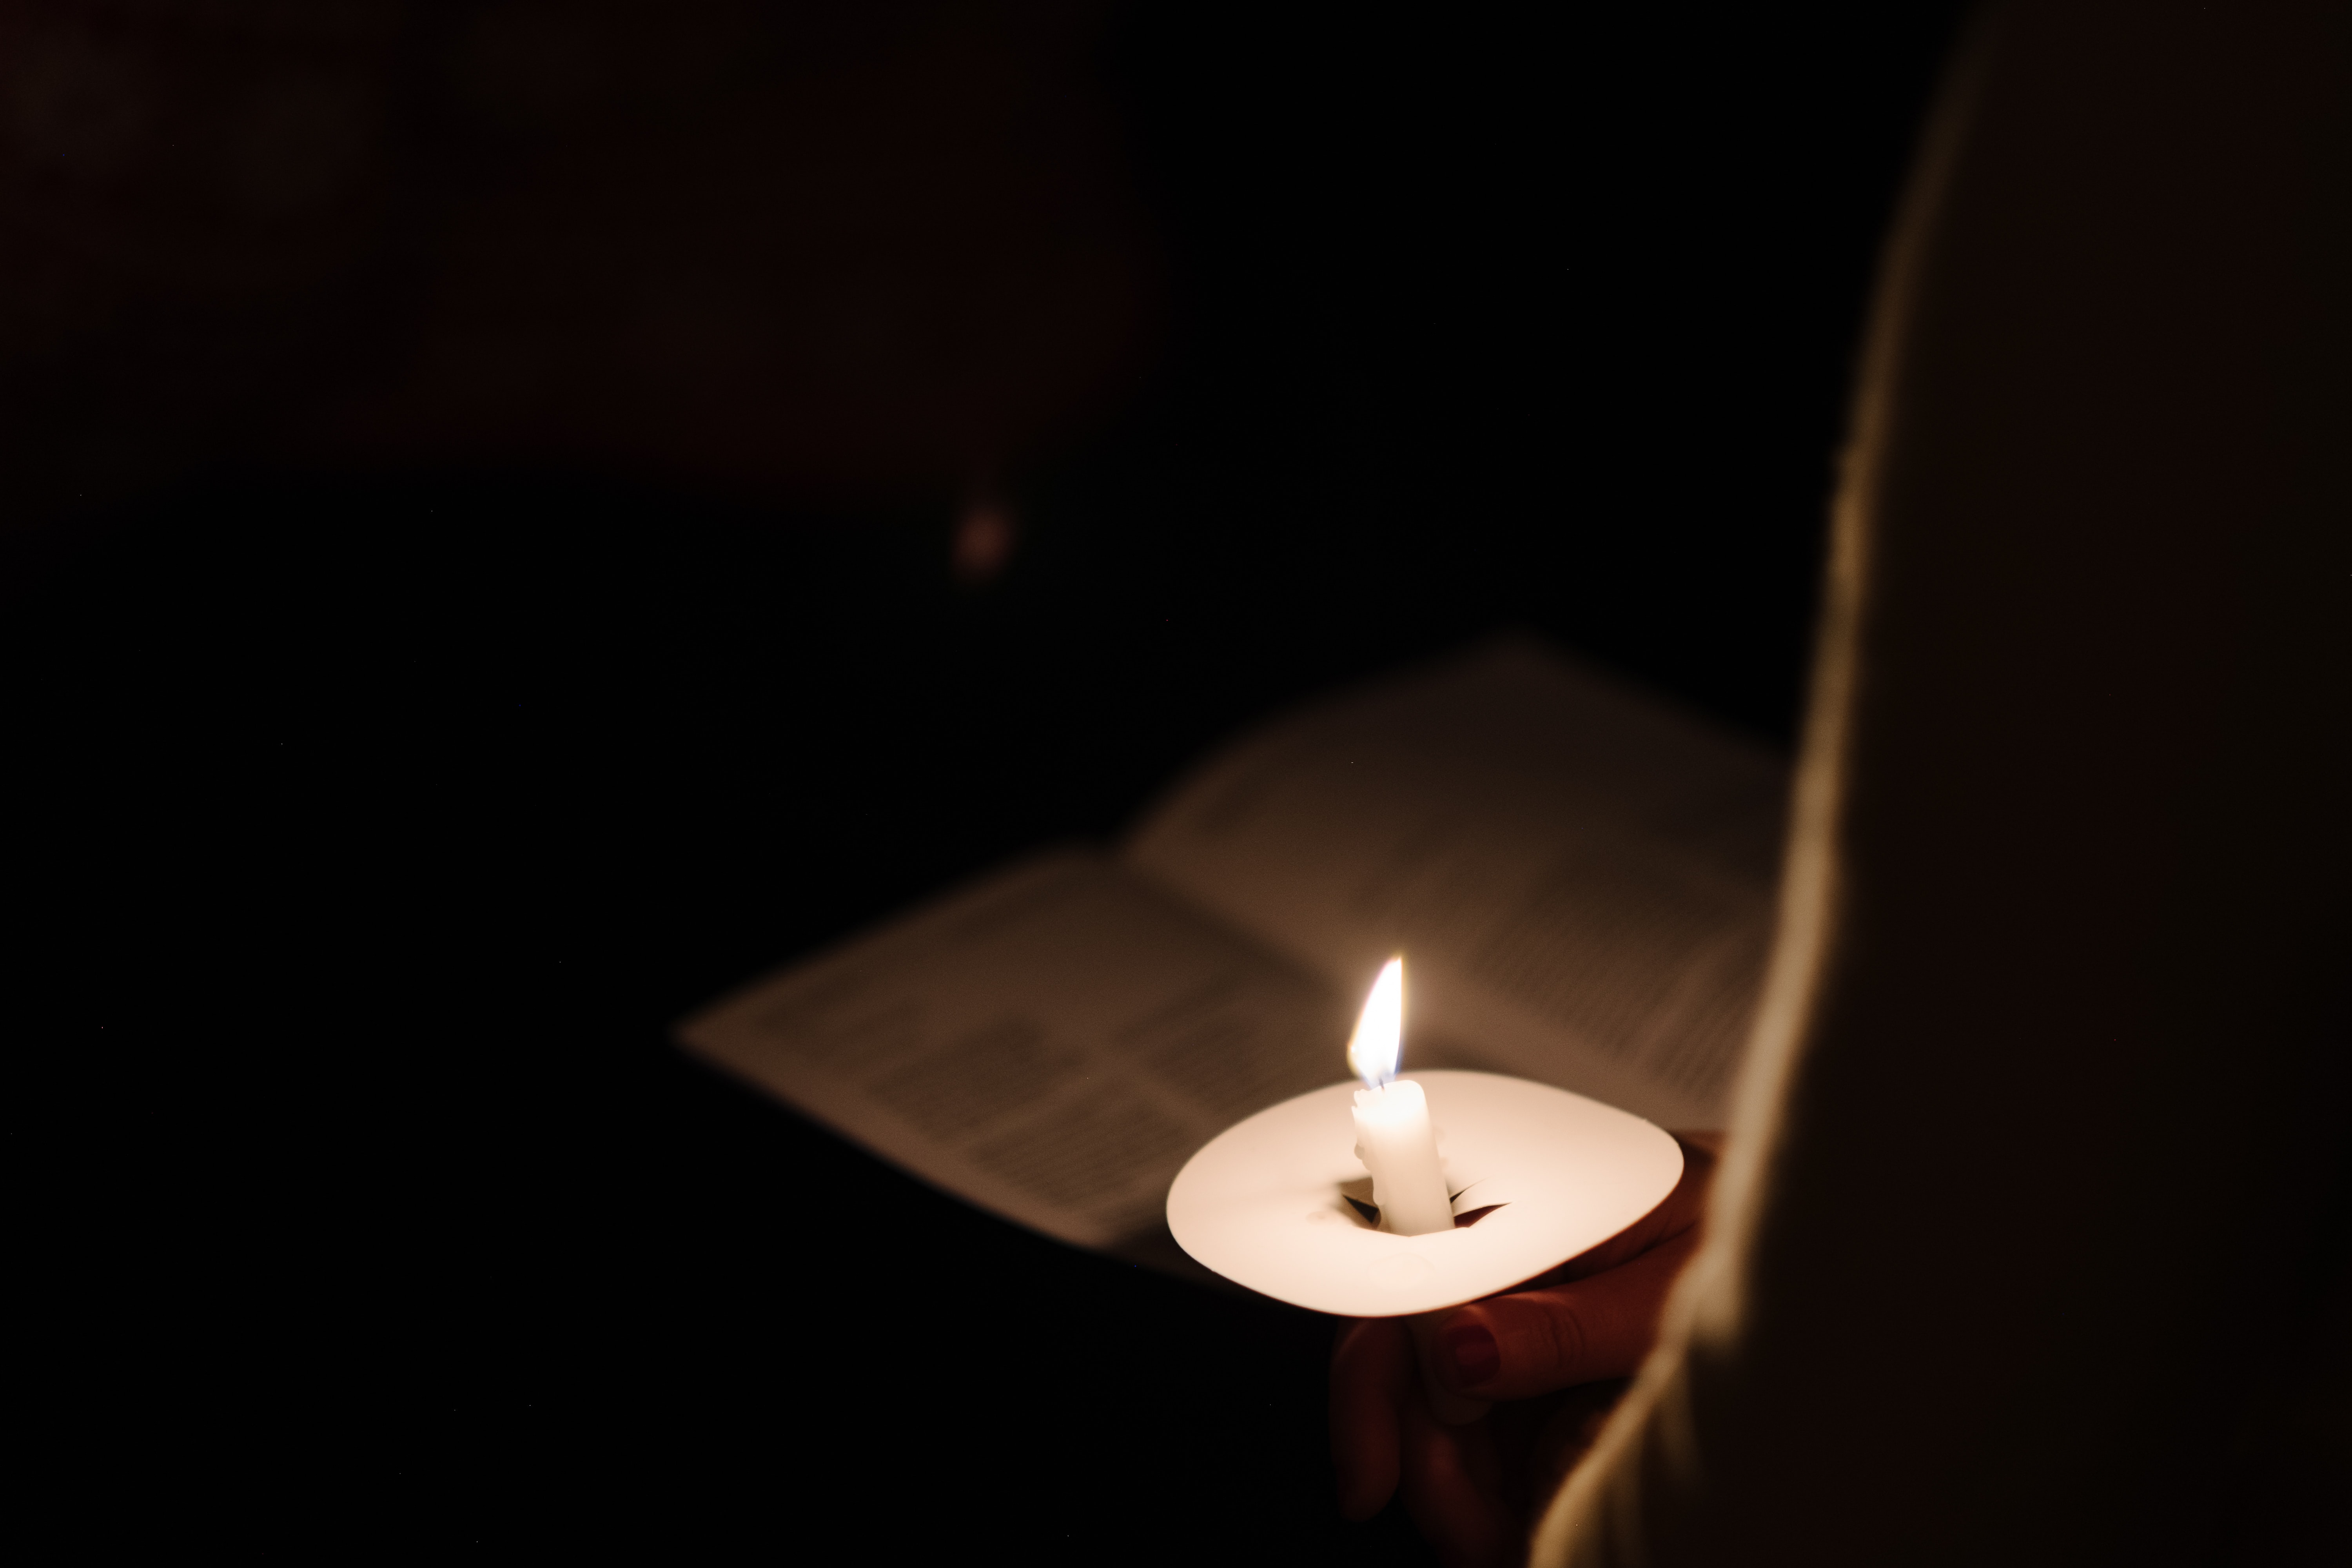 person holds lighted candle and paper